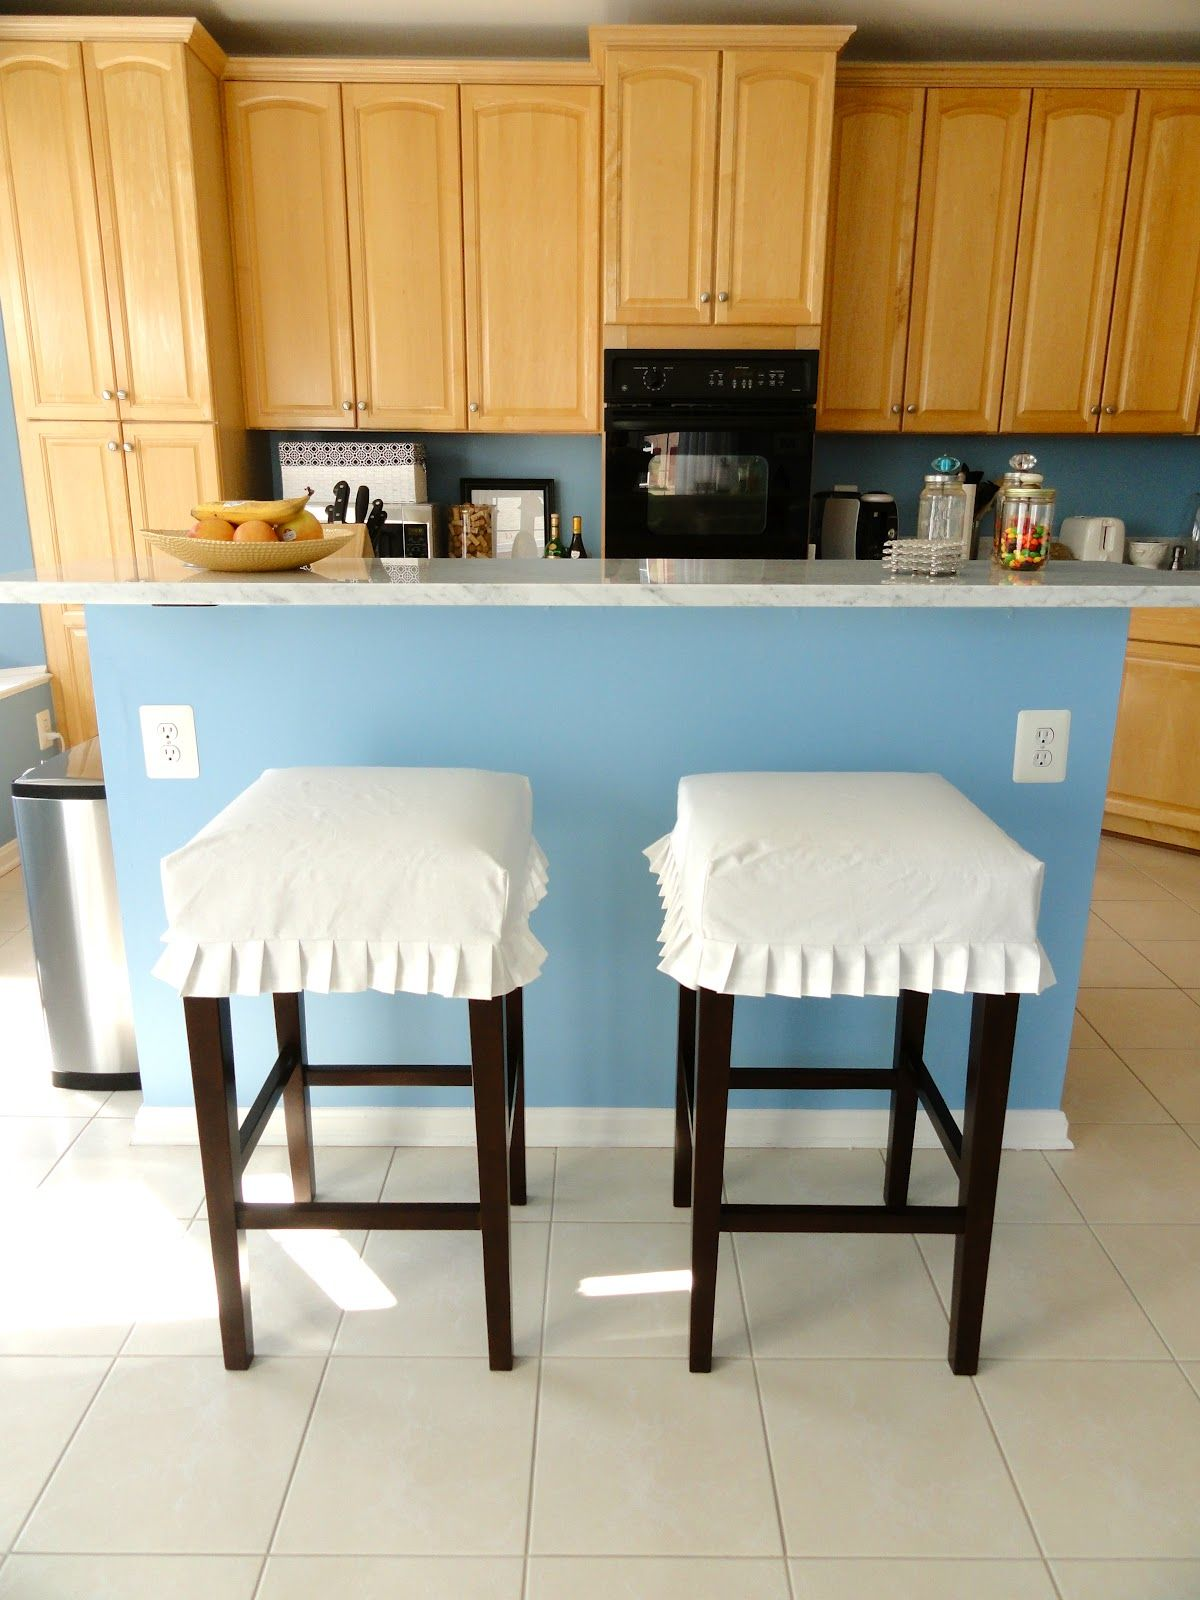 Rachel\'s Nest: Kitchen barstool slipcovers | Sewing | Pinterest ...